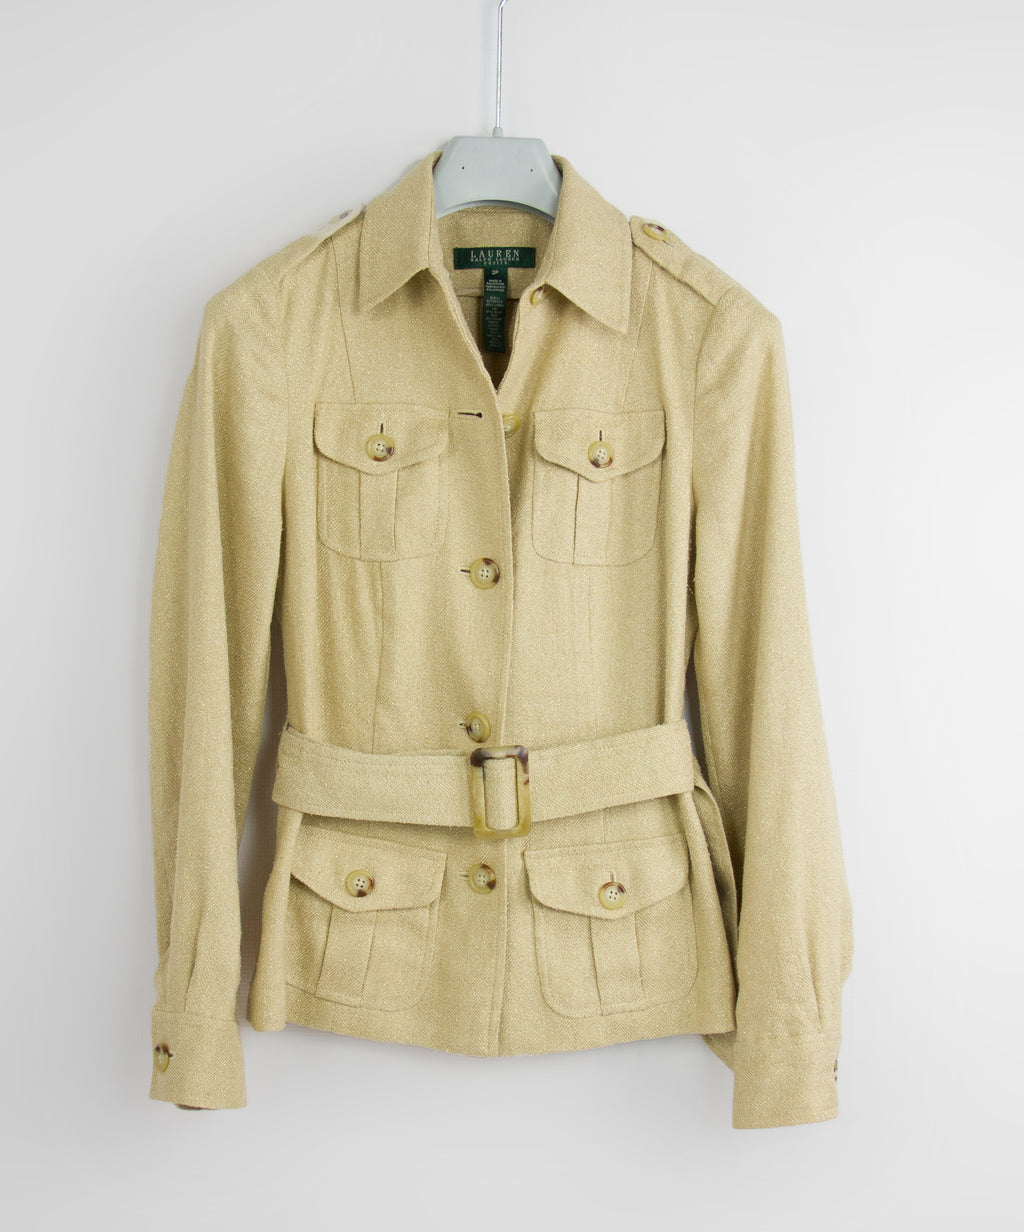 RALPH LAUREN Metallic Silk & Linen Blend Safari Style Jacket, SIZE 2P - secondfirst